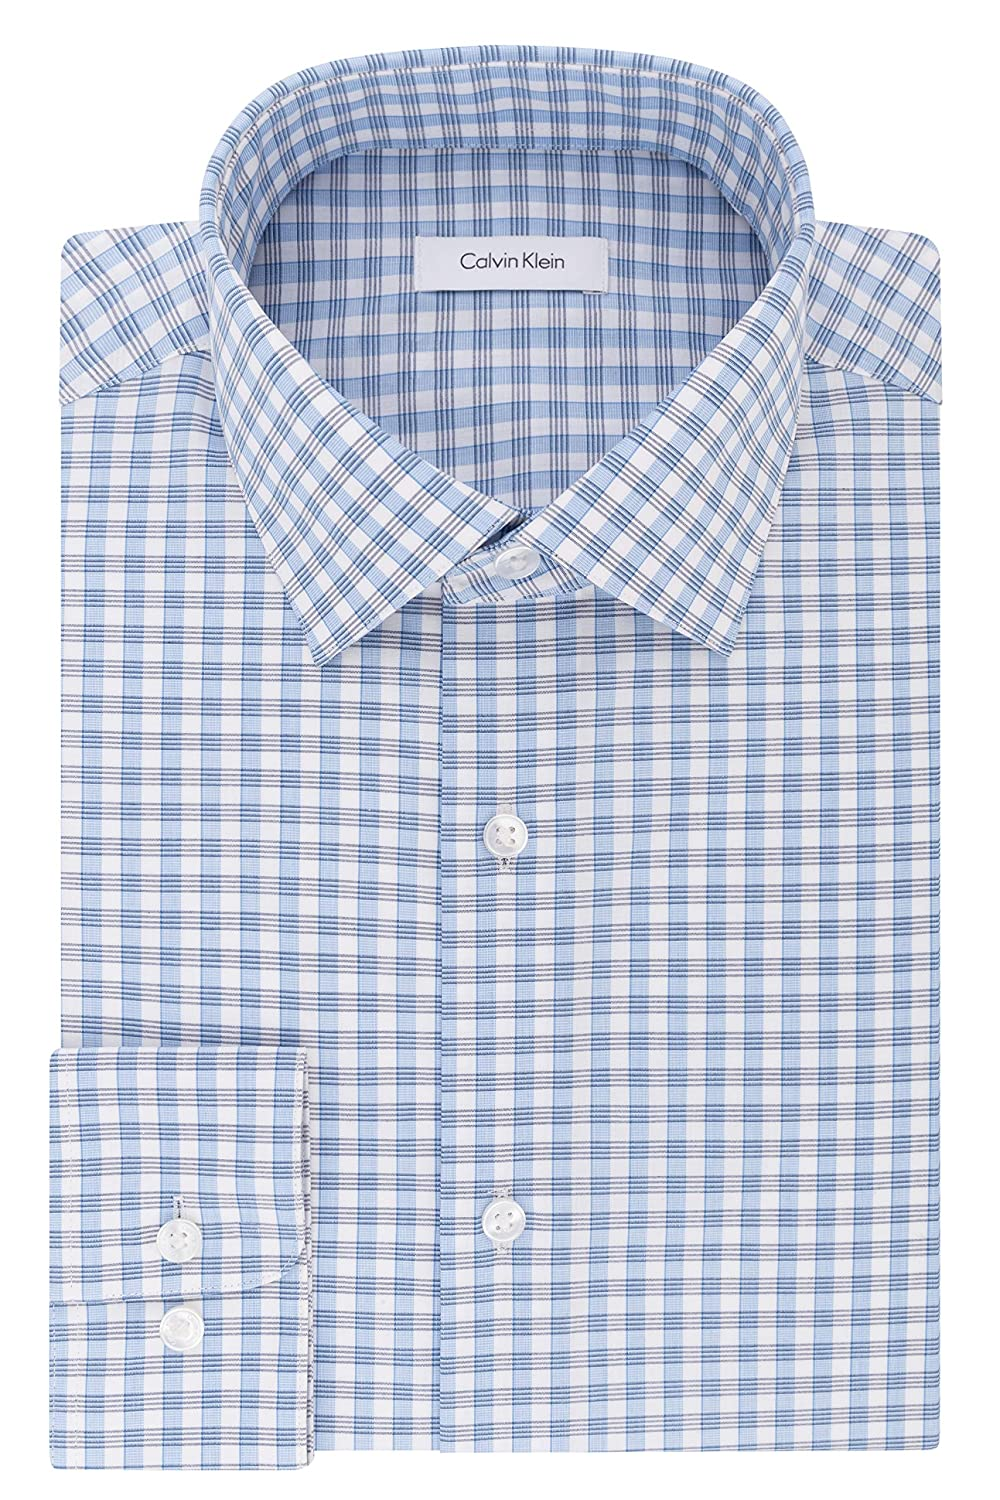 Symbol Of The Brand Slim Fit Blue Plaid Herringbone Spread Collar Wrinkle Freee Cotton Dress Shirt Clothing, Shoes, Accessories